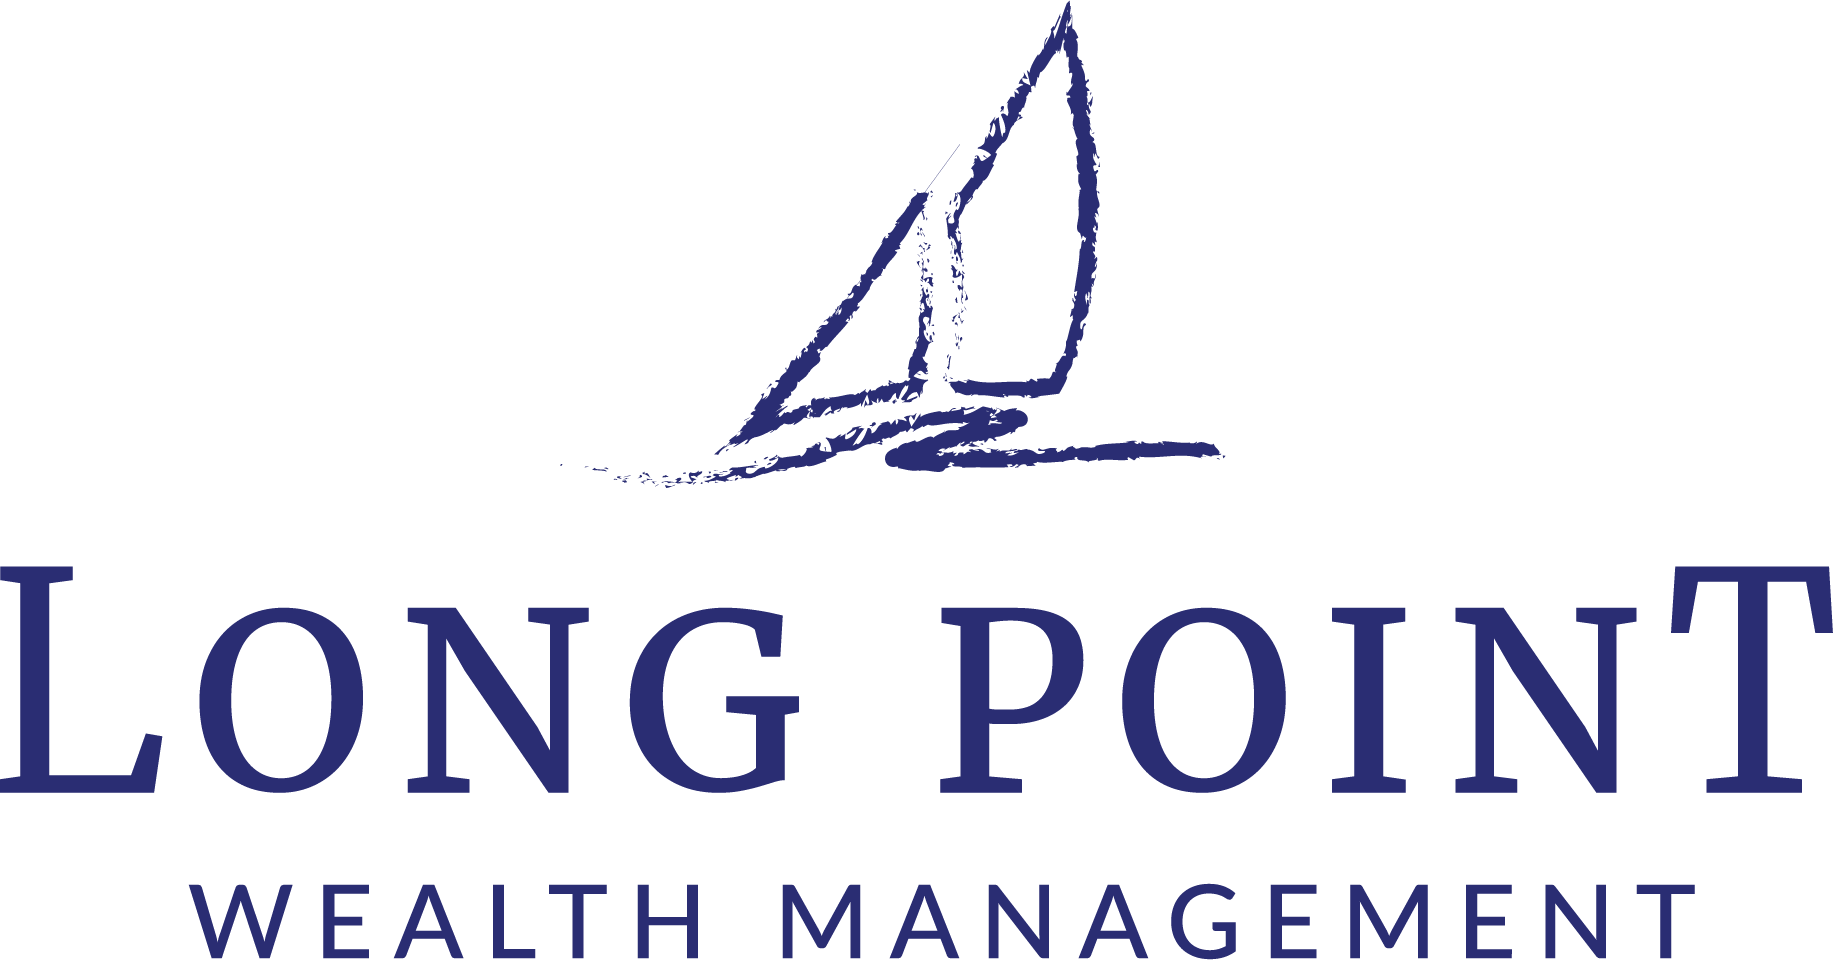 Long Point Wealth Management